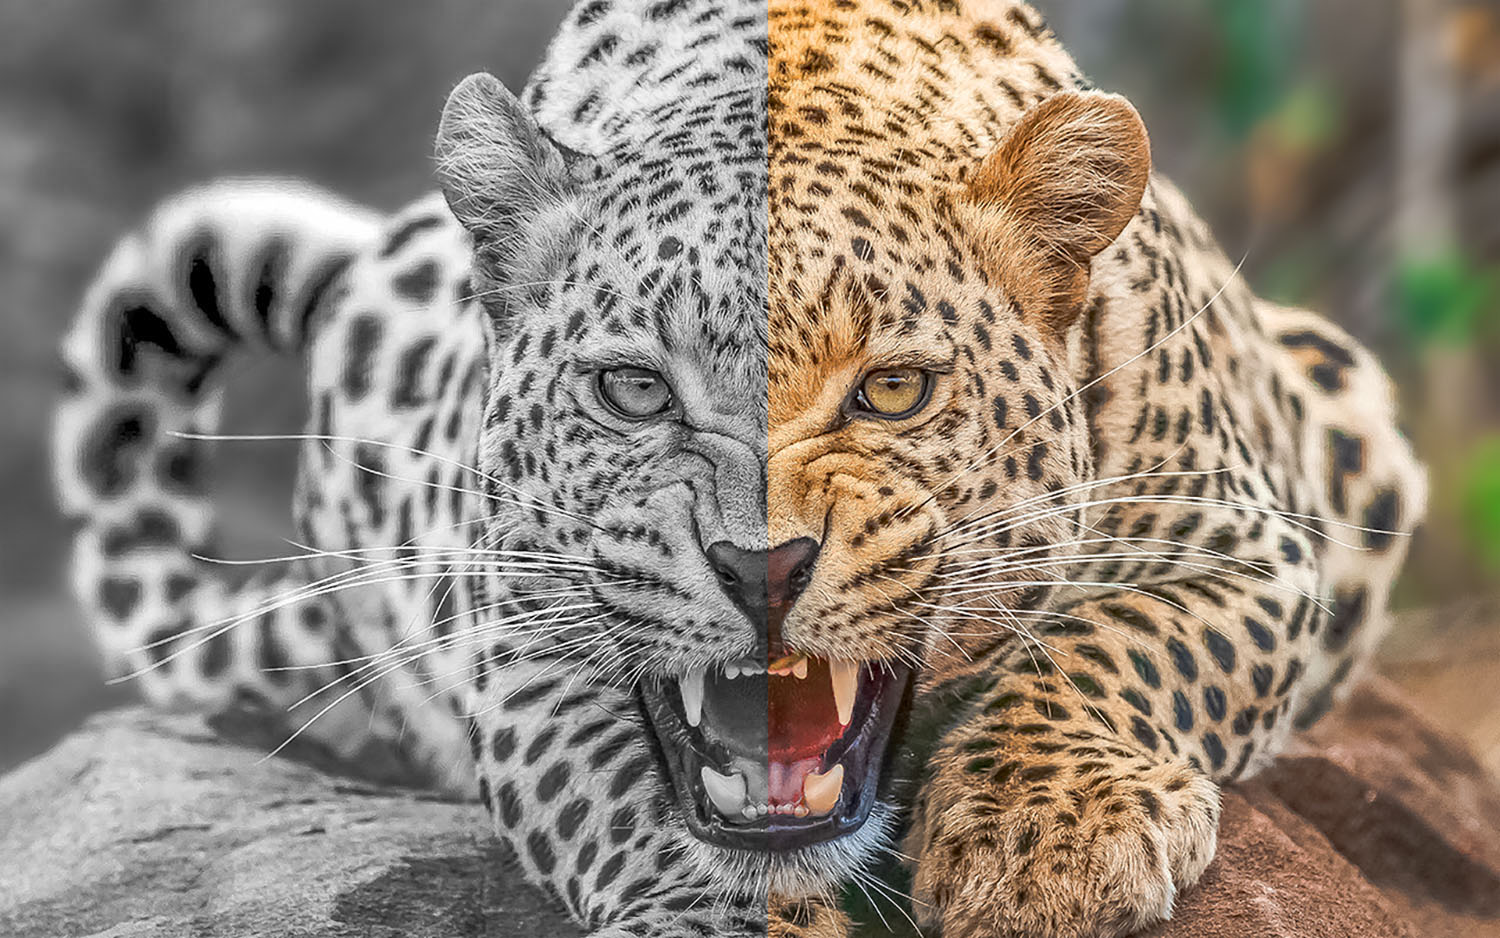 https://i1.wp.com/digital-photography-school.com/wp-content/uploads/2019/05/Leopard-Color-BW.jpg?resize=1500%2C938&ssl=1